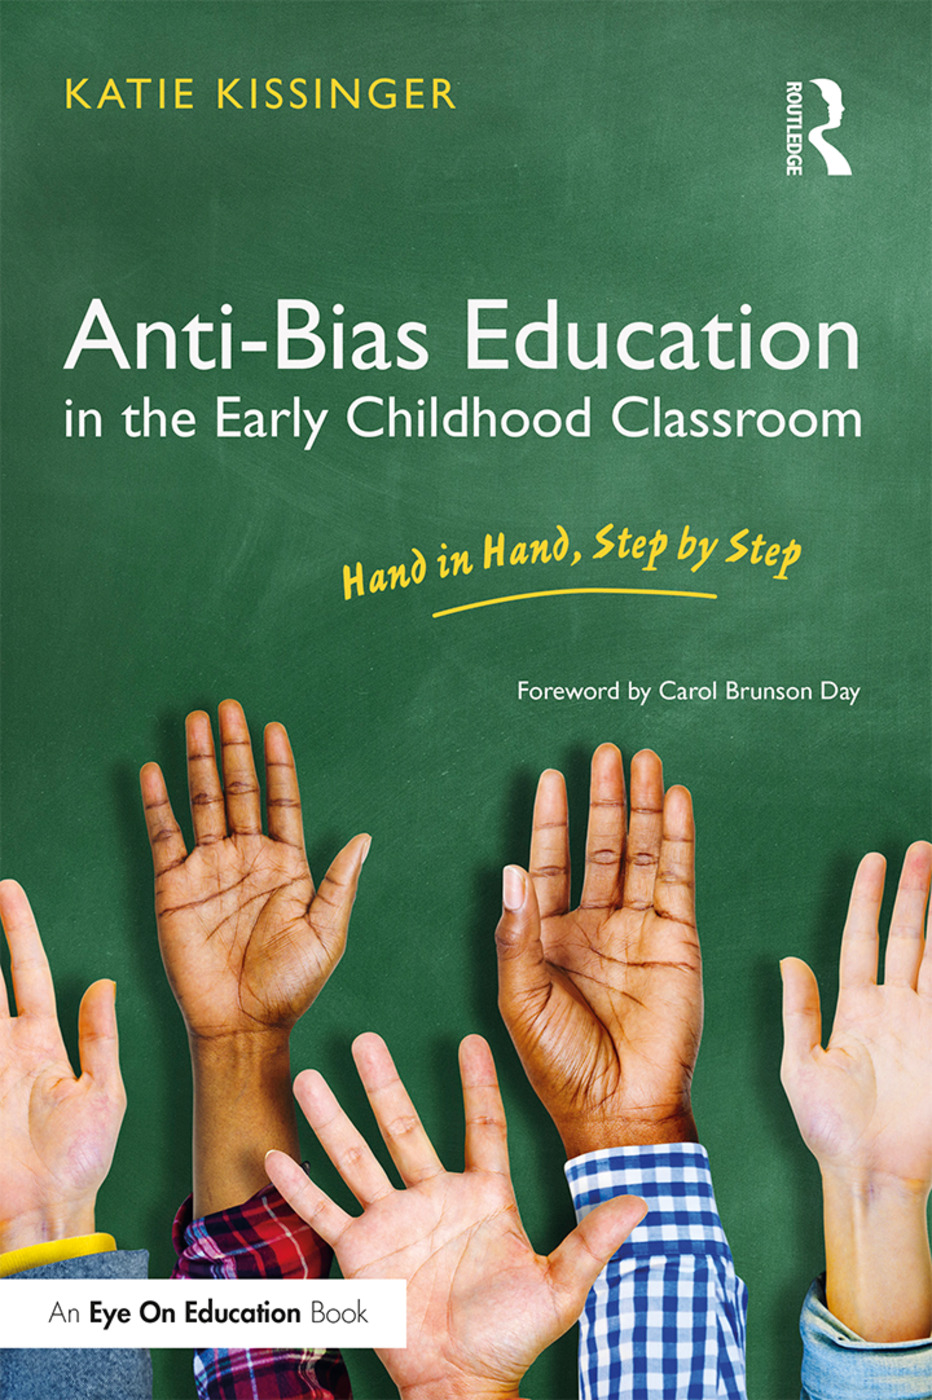 Anti-Bias Education in the Early Childhood Classroom: Hand in Hand, Step by Step book cover